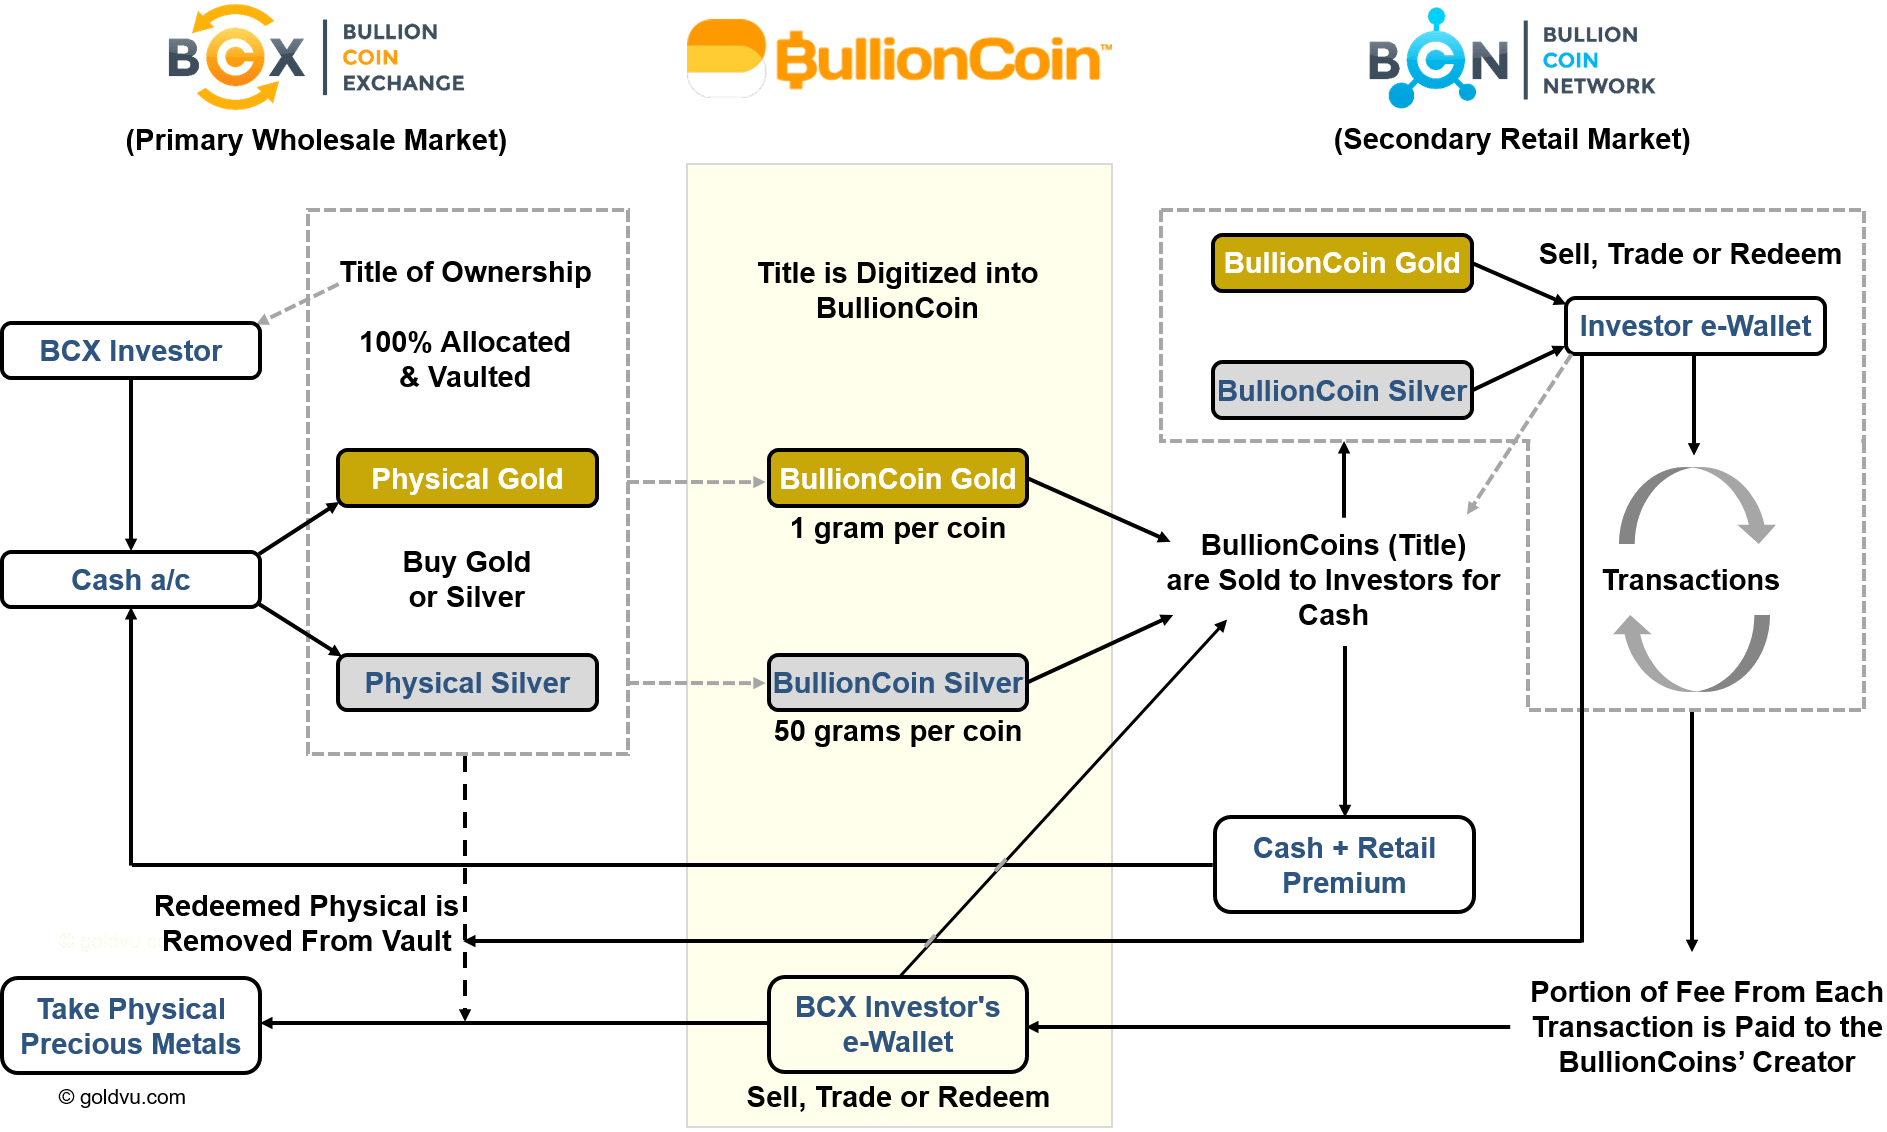 BullionCoin Exchange Network Life Cycle